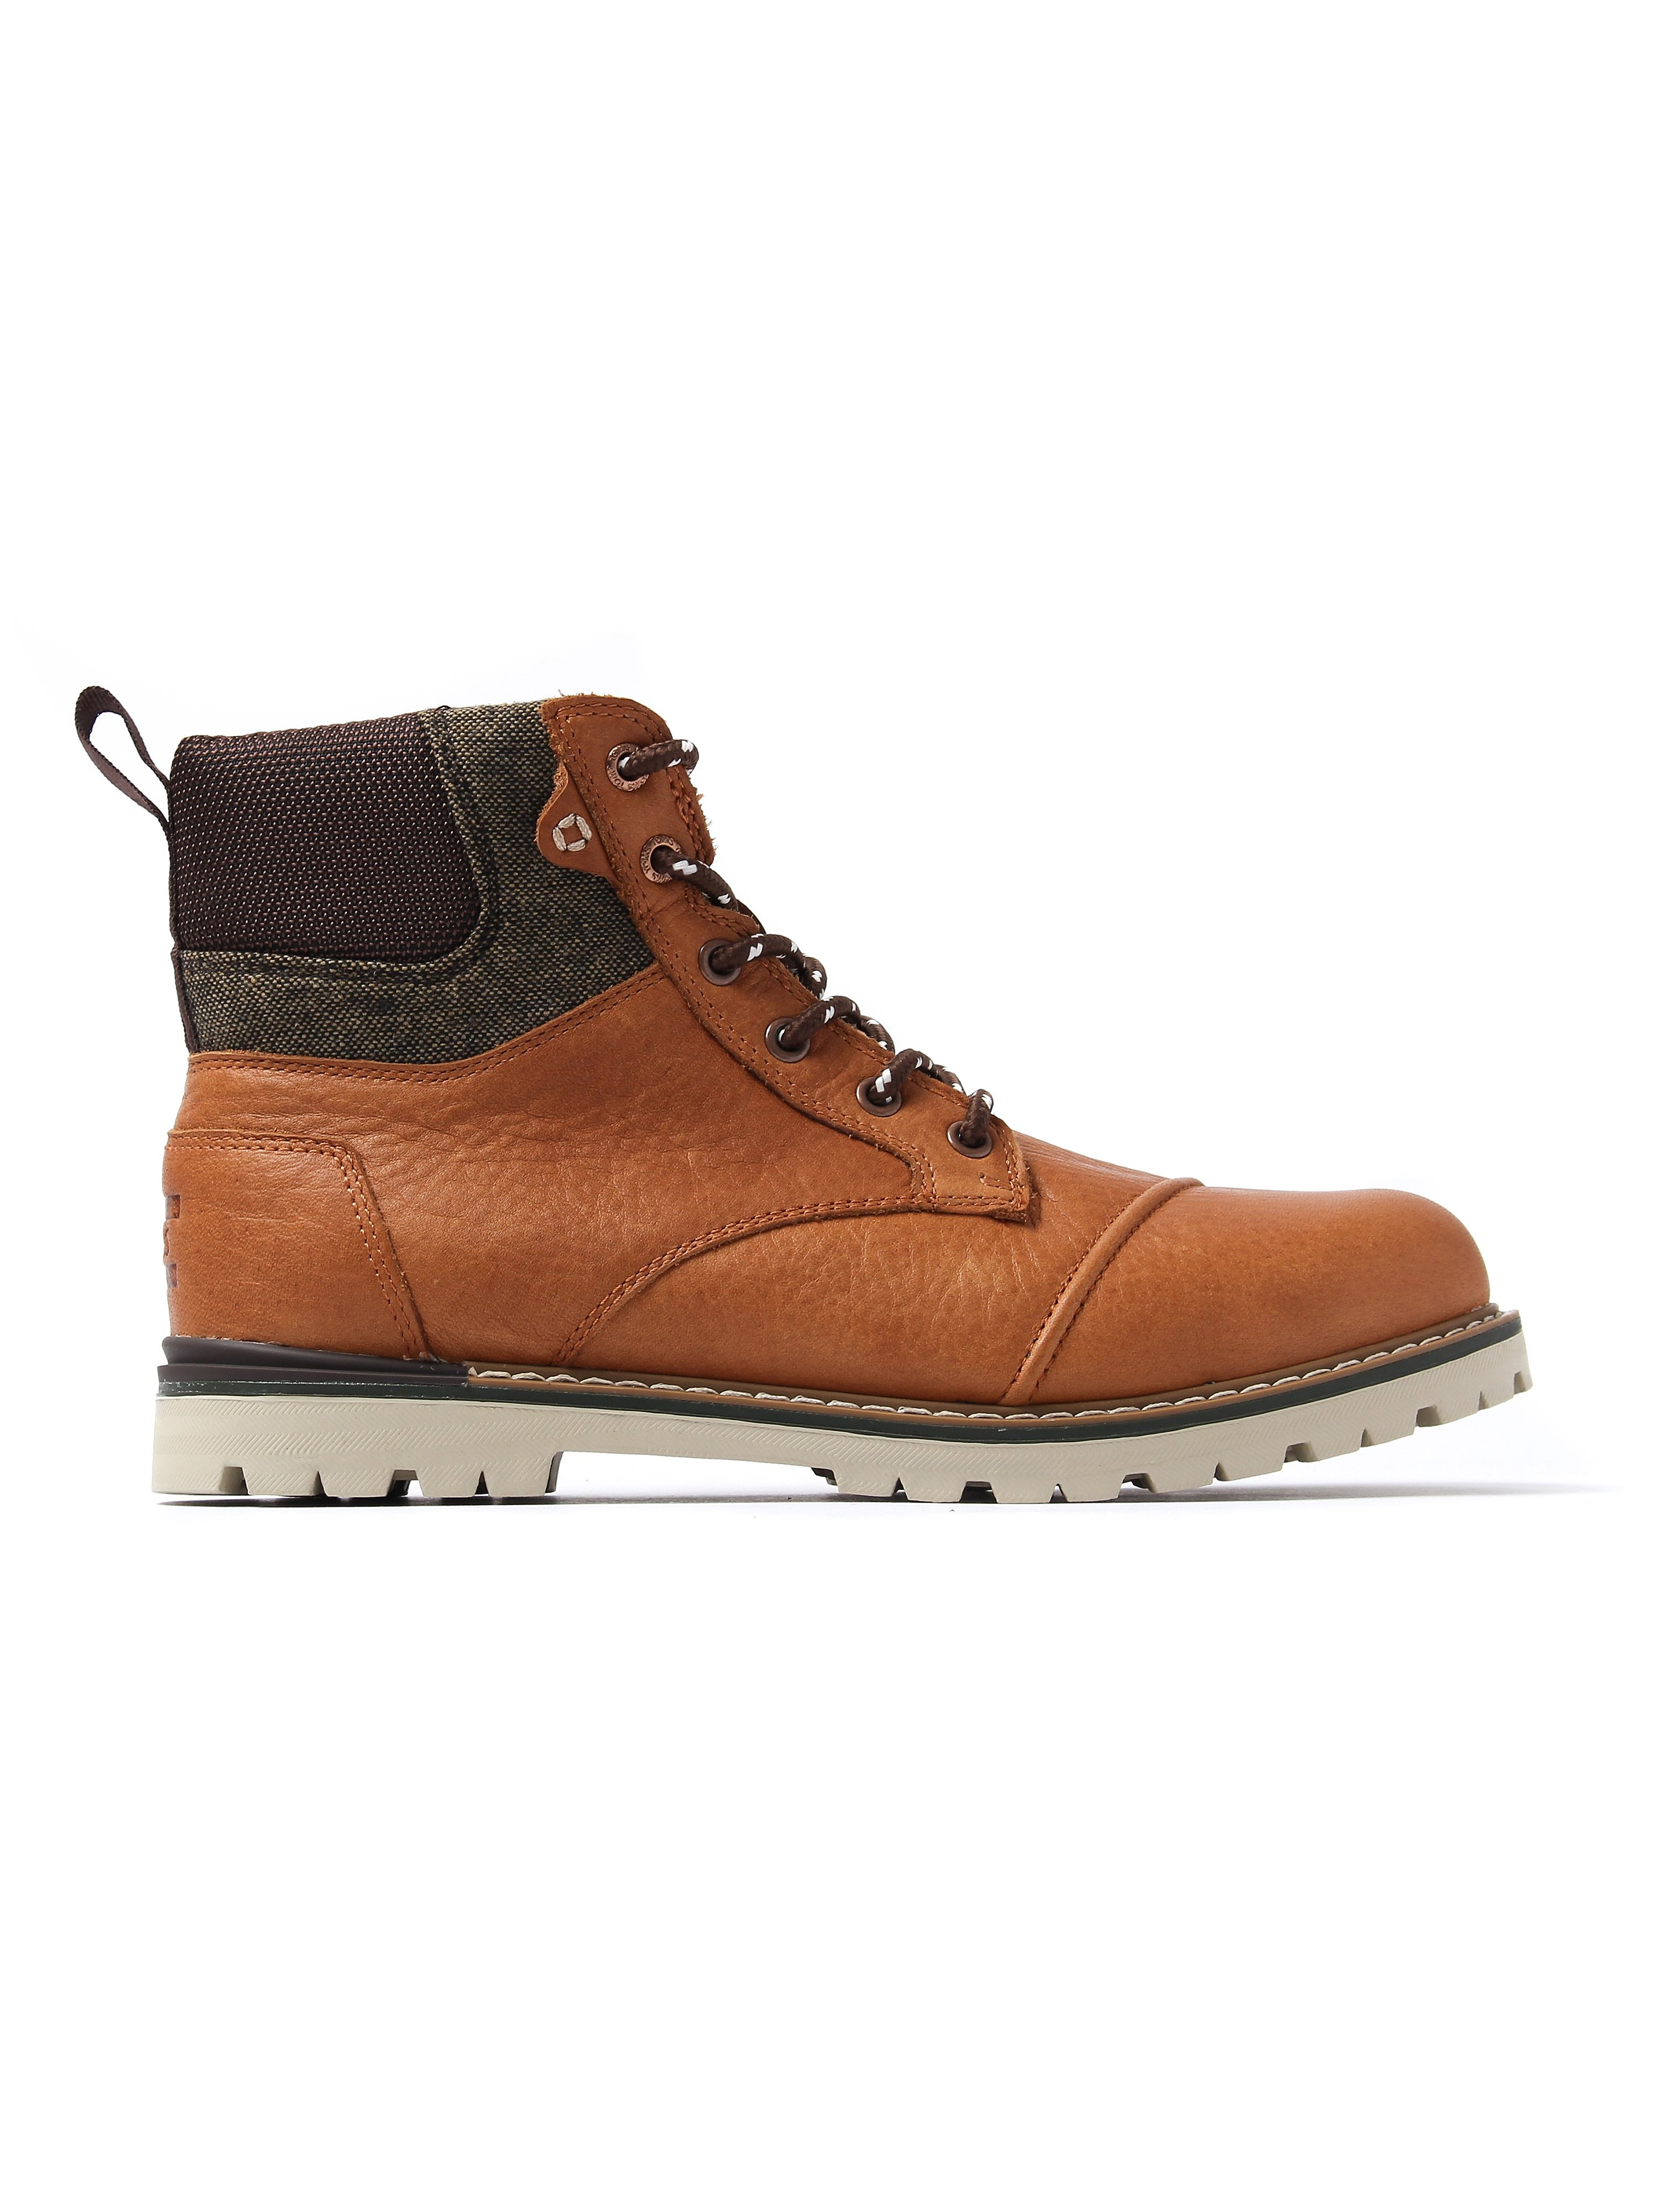 Toms Men's Ashland Waterproof Boots - Dark Toffee Leather